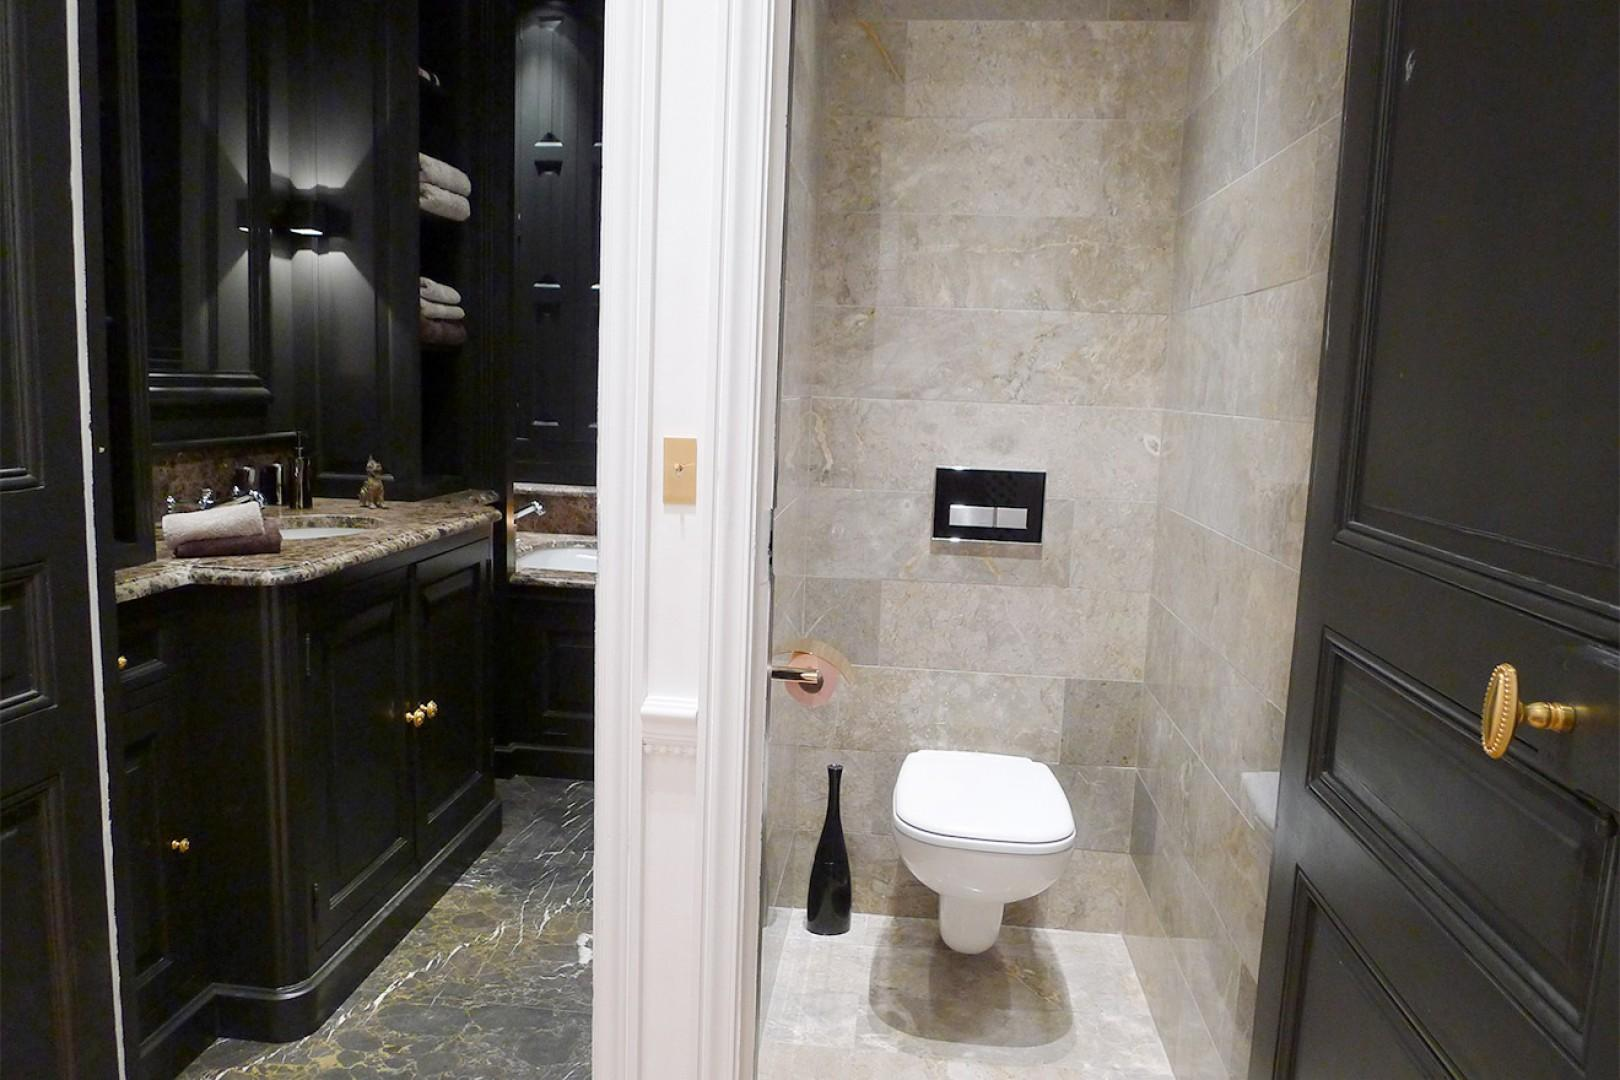 A separate half bath with toilet is conveniently located next to the bathroom.